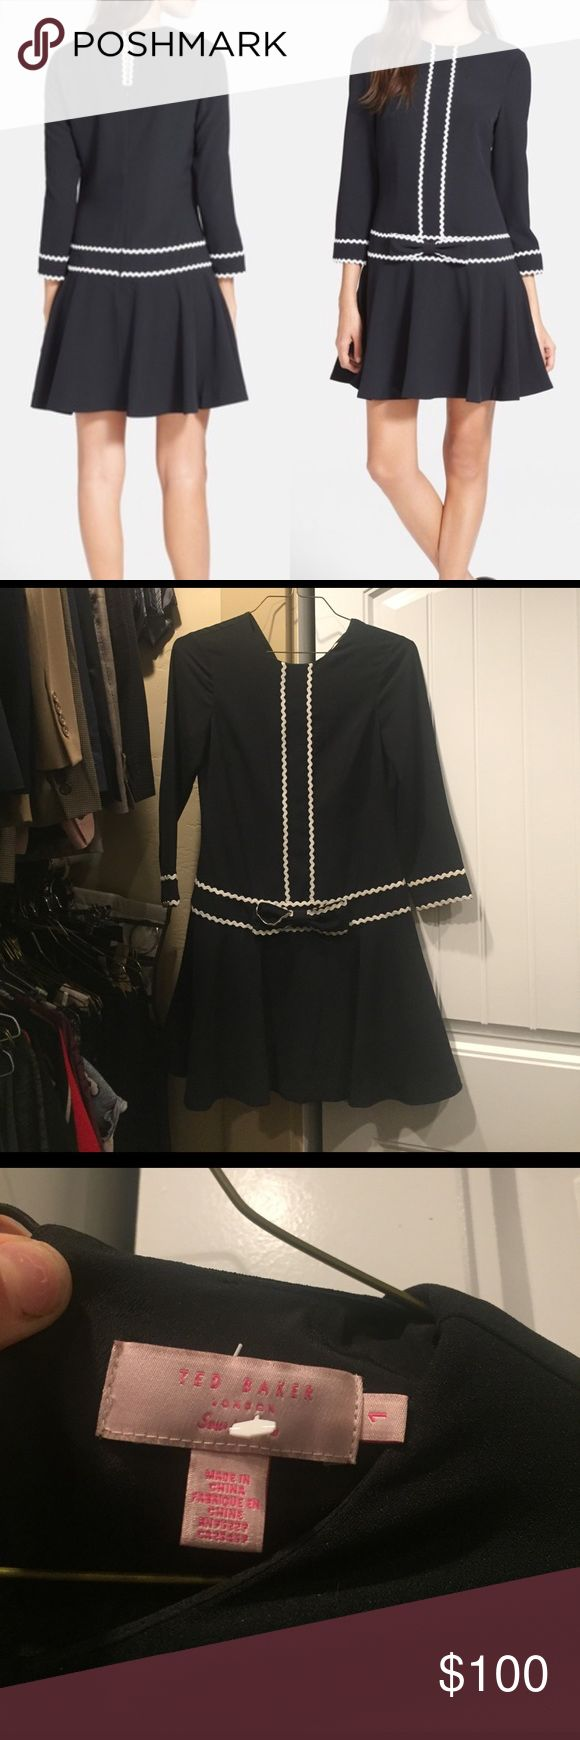 """Ted Baked London Gilla dress Black dropwaist Gilla dress from Ted Baker London. Worn once and freshly dry cleaned! Bow detail on front, zip back with button closure. 3/4 sleeves. White piping. Adorable! Size 1 which is a small. Waist 16"""", 34"""" shoulder to hem. Ted Baker London Dresses"""